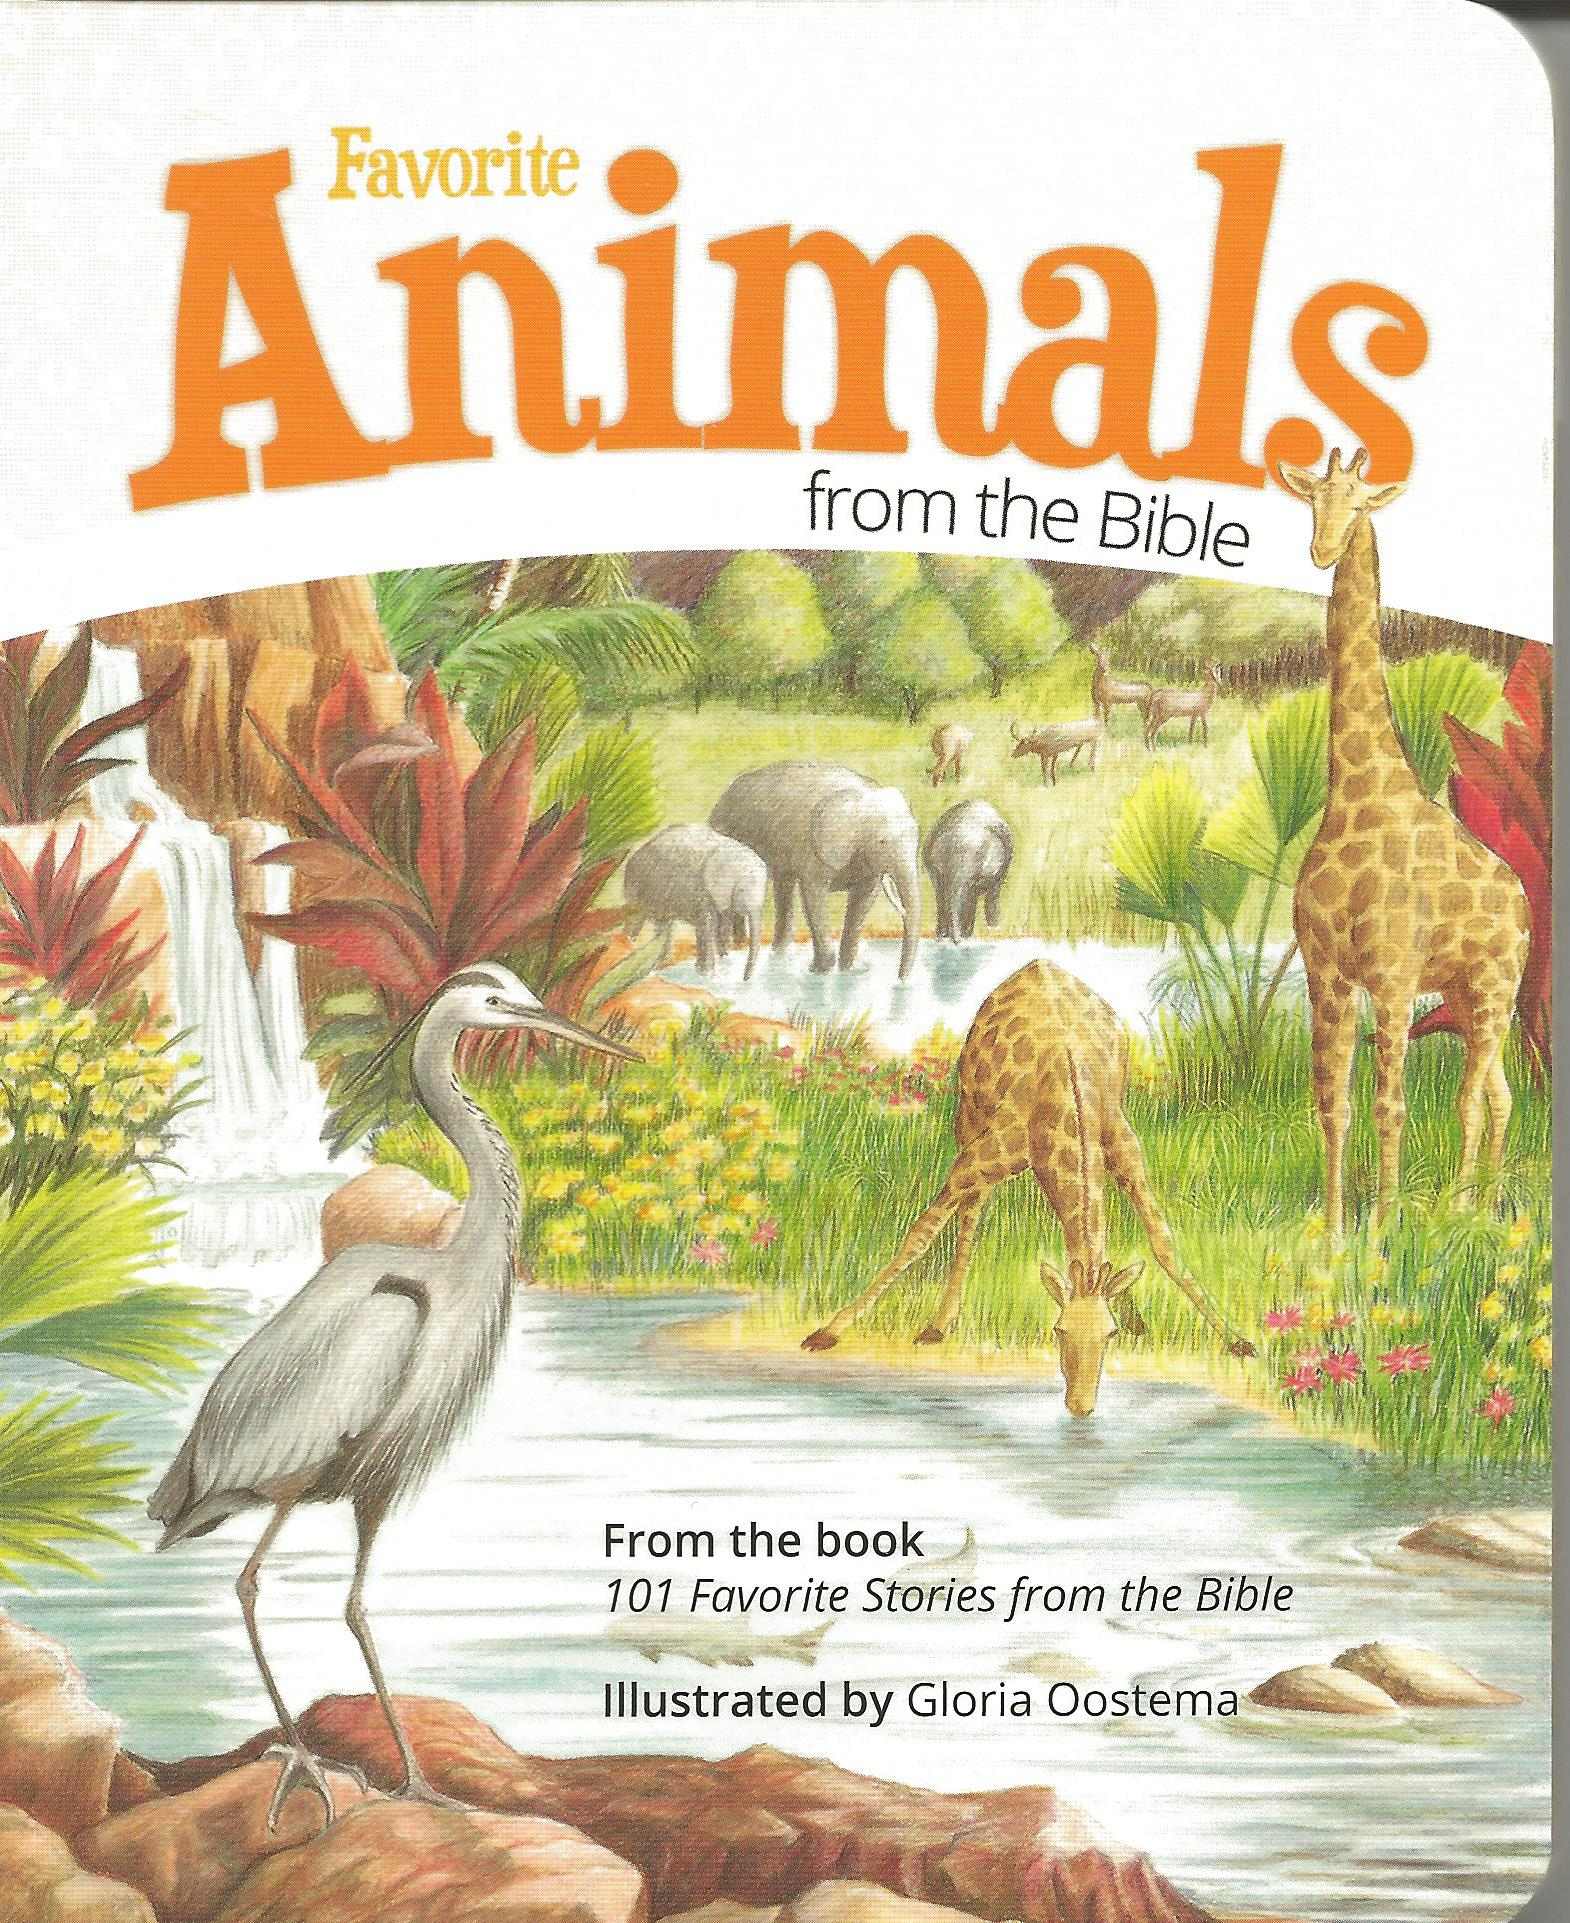 FAVORITE ANIMALS FROM THE BIBLE